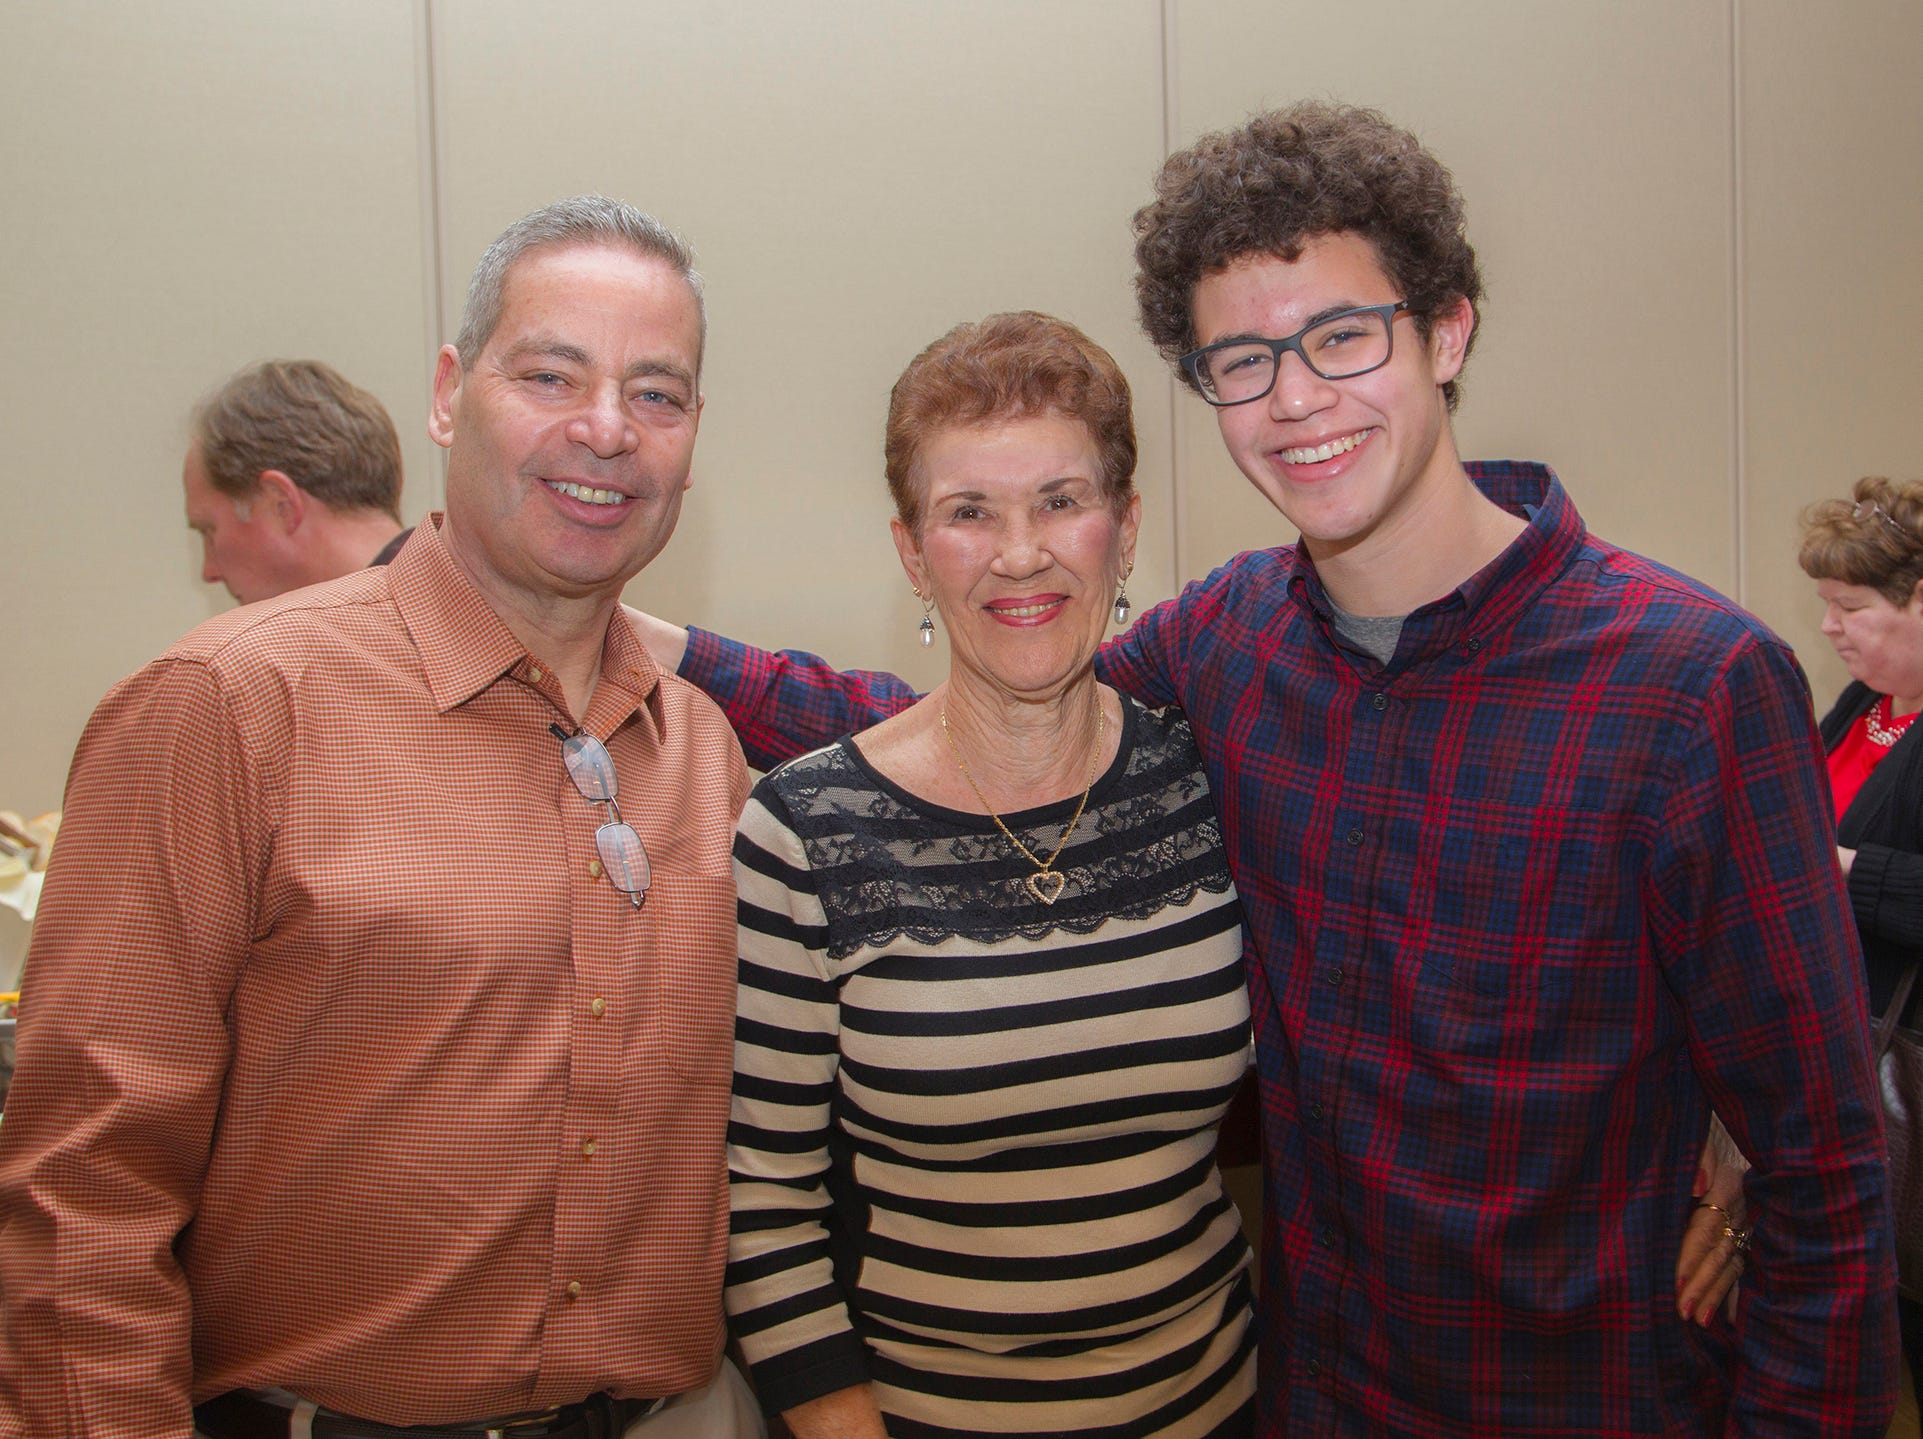 Steve Sarfaty, Carol Cautillo, Michael.  Ridgewood High School seniors held their Project Graduation fashion show at the Teaneck Marriott at Glenpointe. Students walked the runway in this season's latest fashion trends. All funds raised benefited the school's Project Graduation Fund for the class of 2019. 03/03/2019